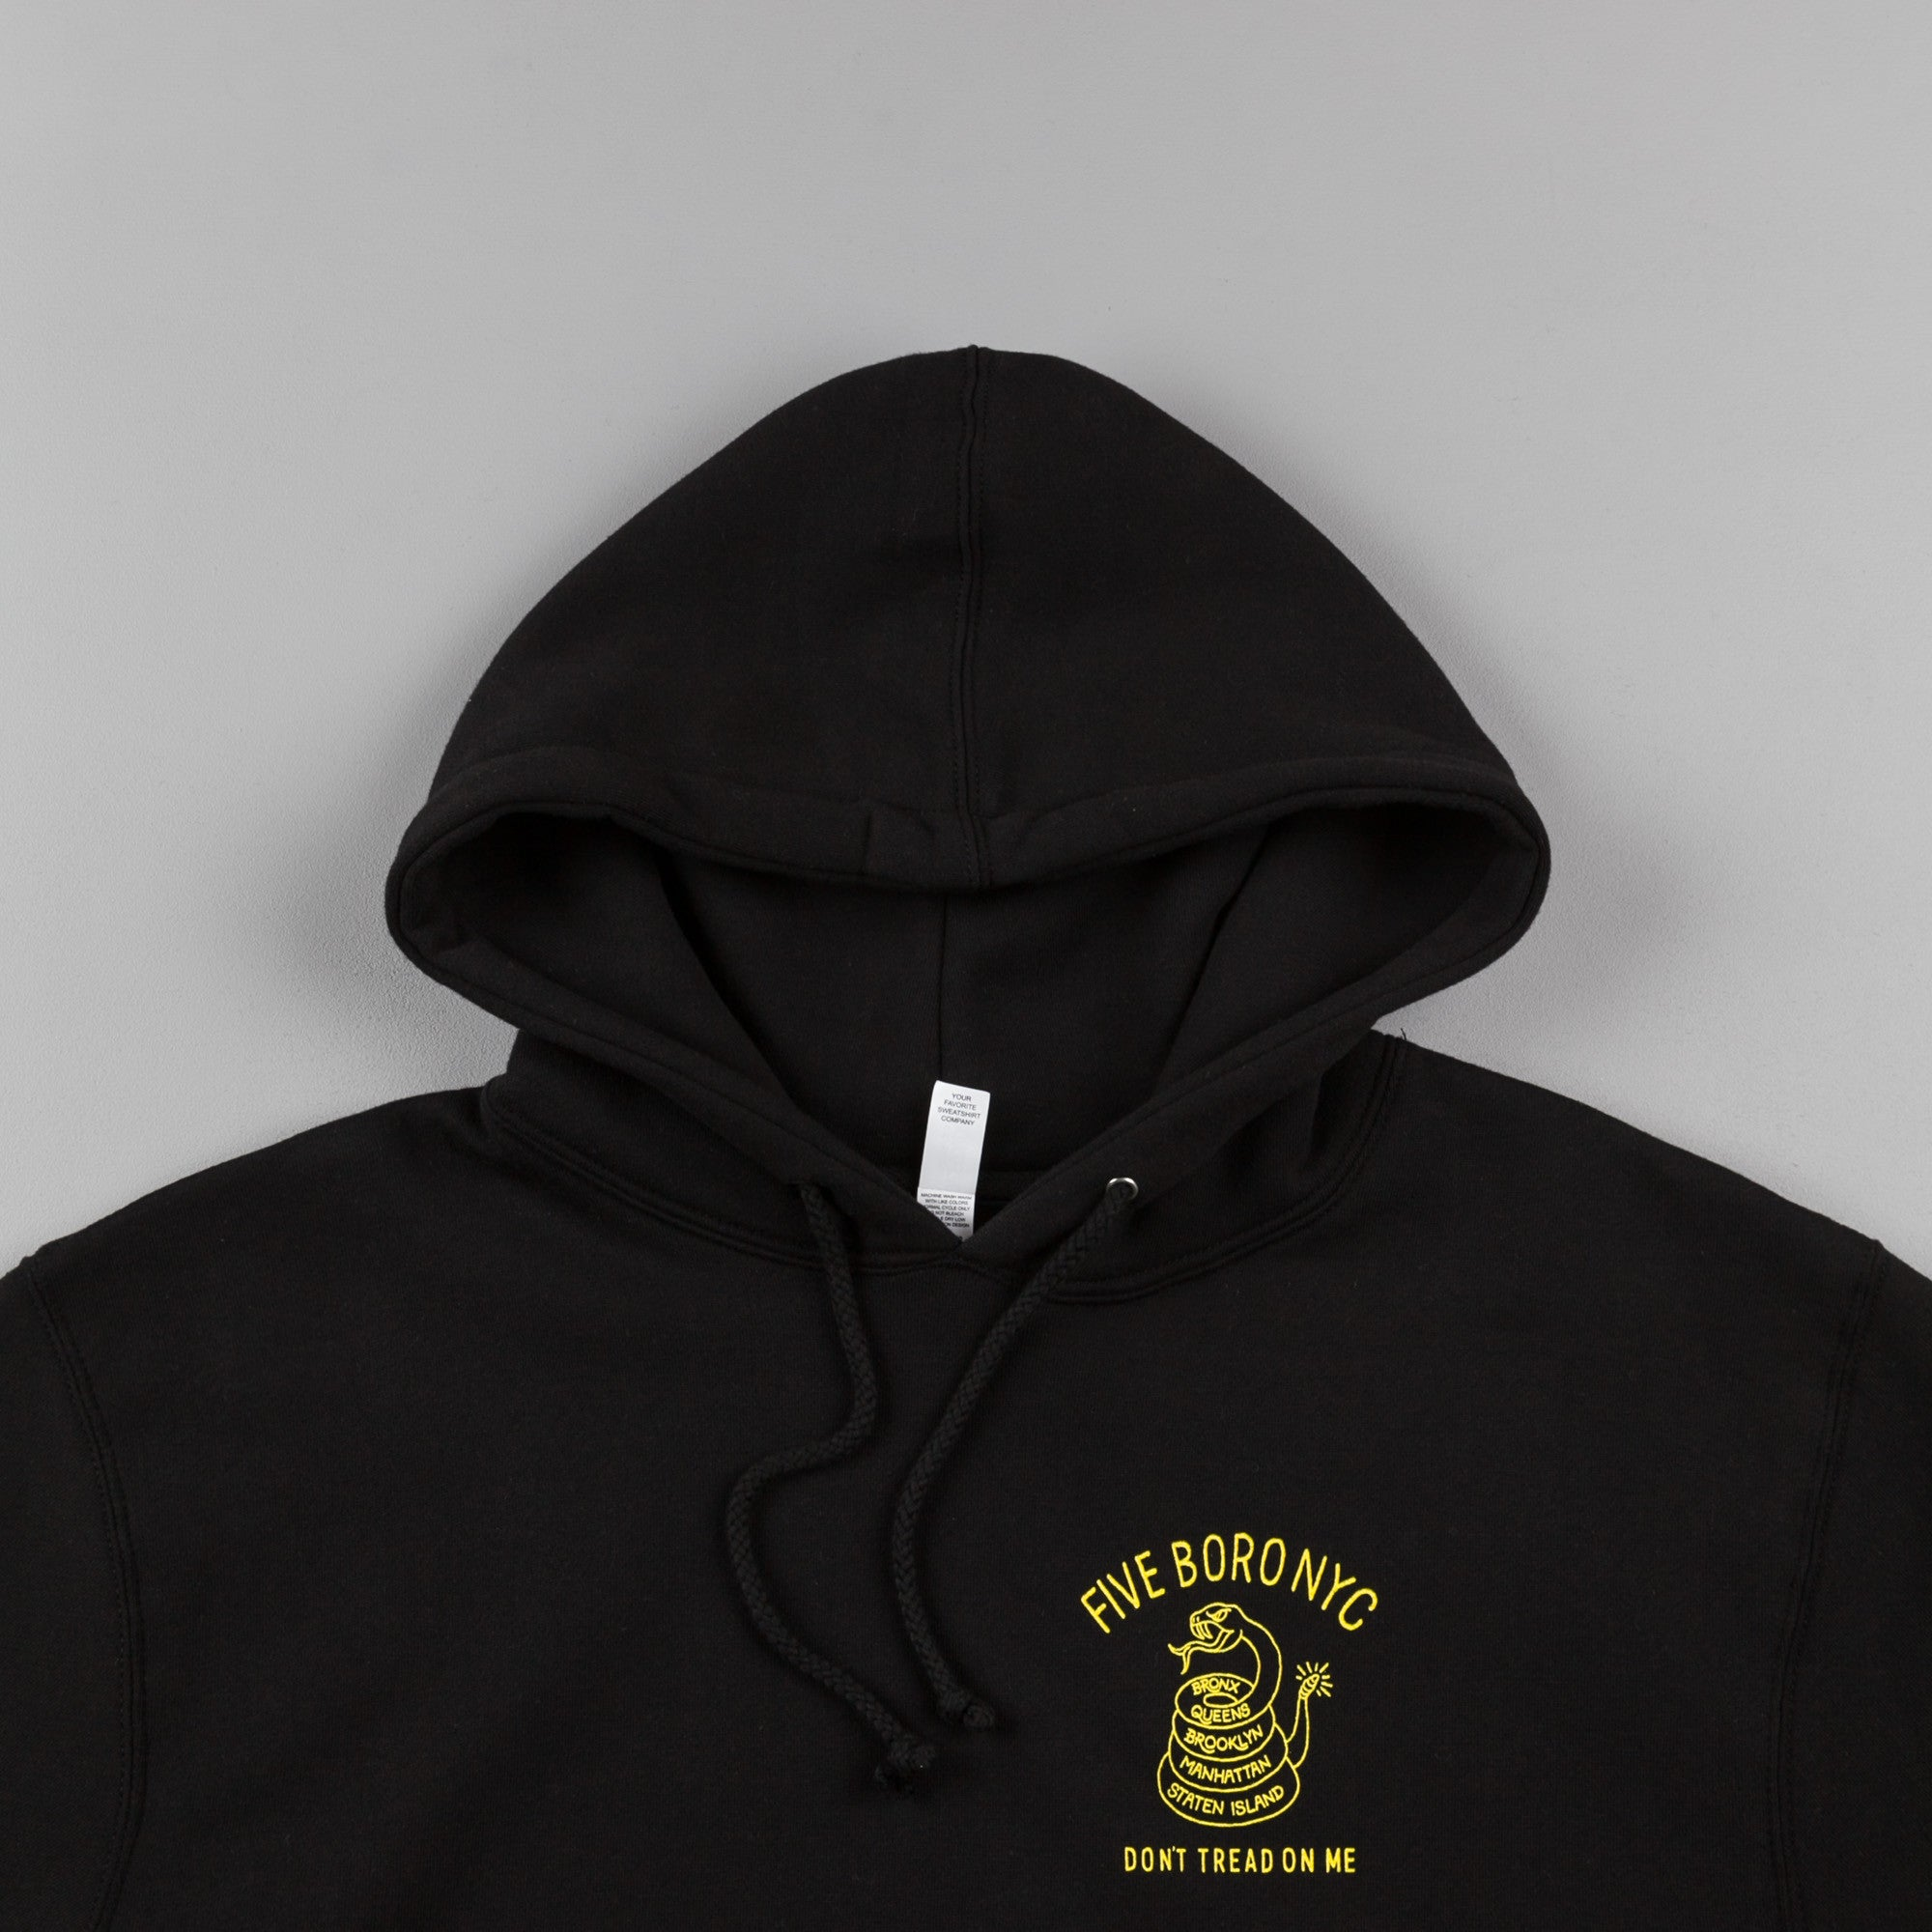 5Boro Don't Tread Hooded Sweatshirt - Black